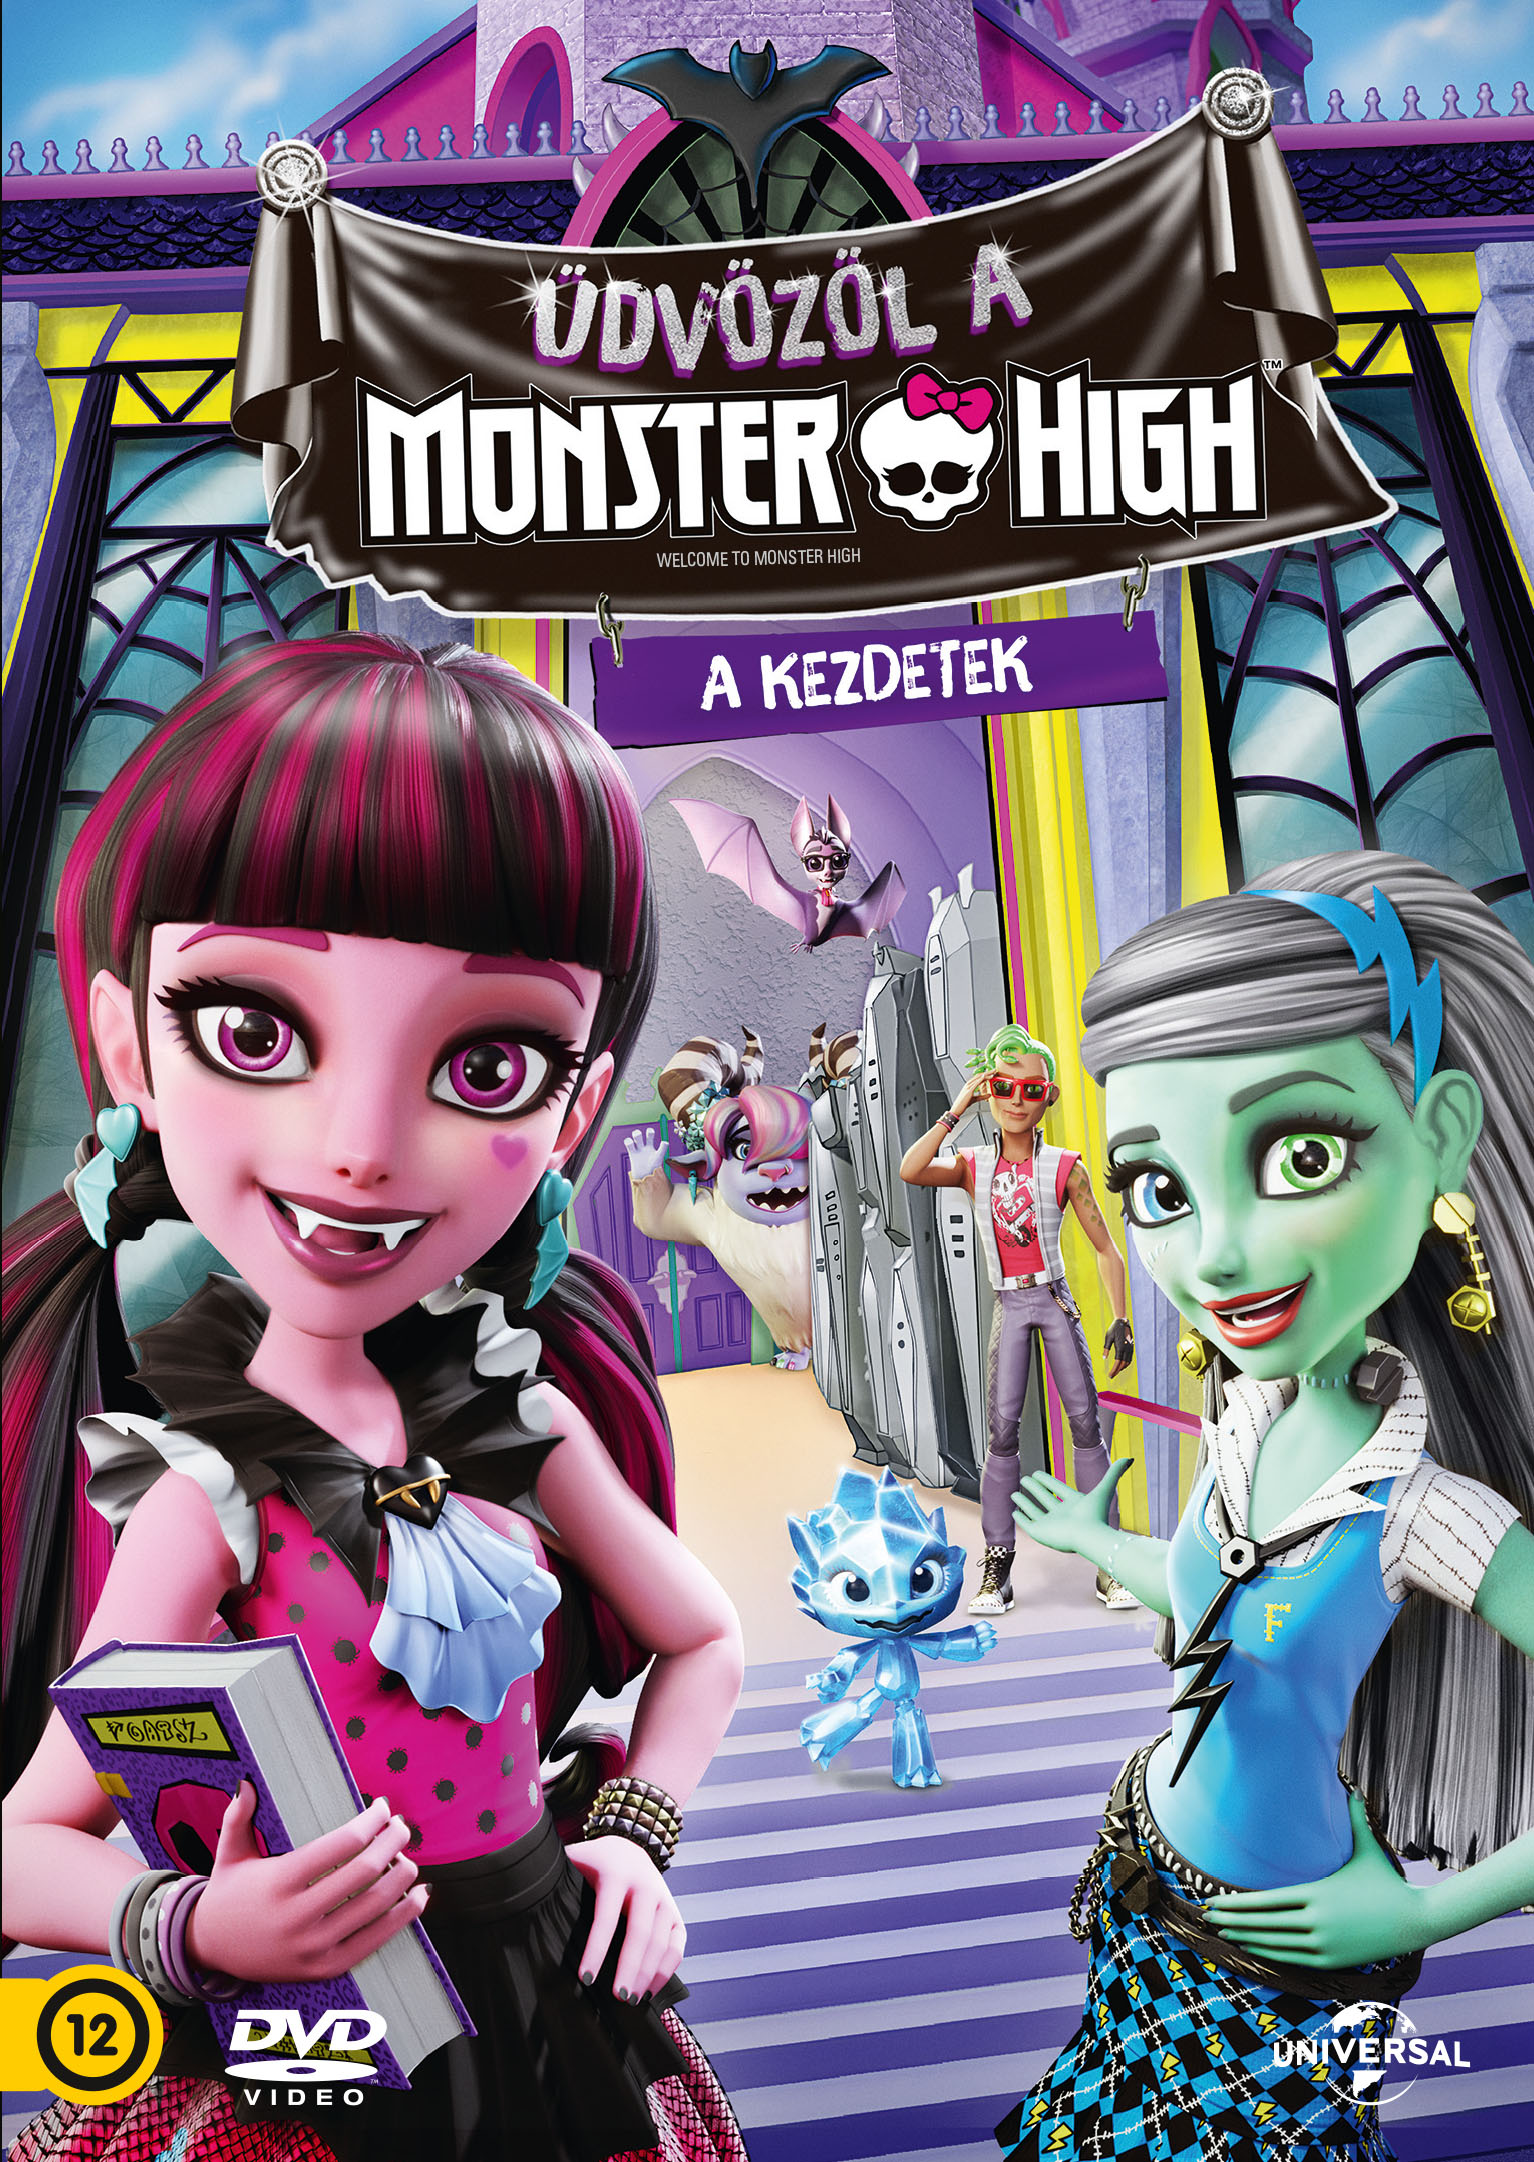 monster_high_welcome_hud001344_2d.jpg